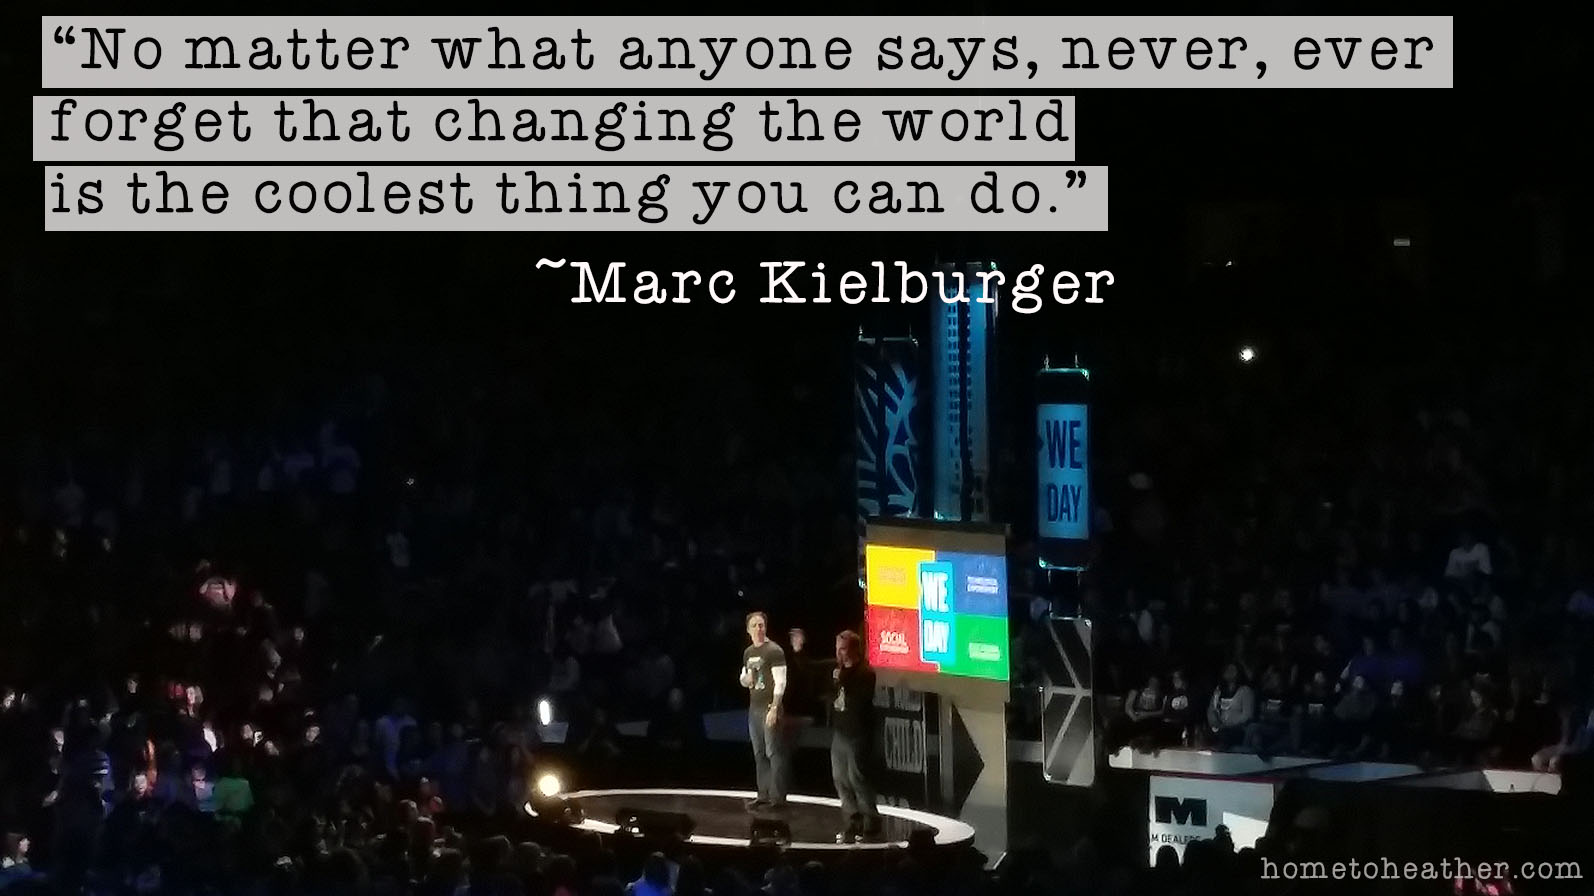 Marc Kielburger quote